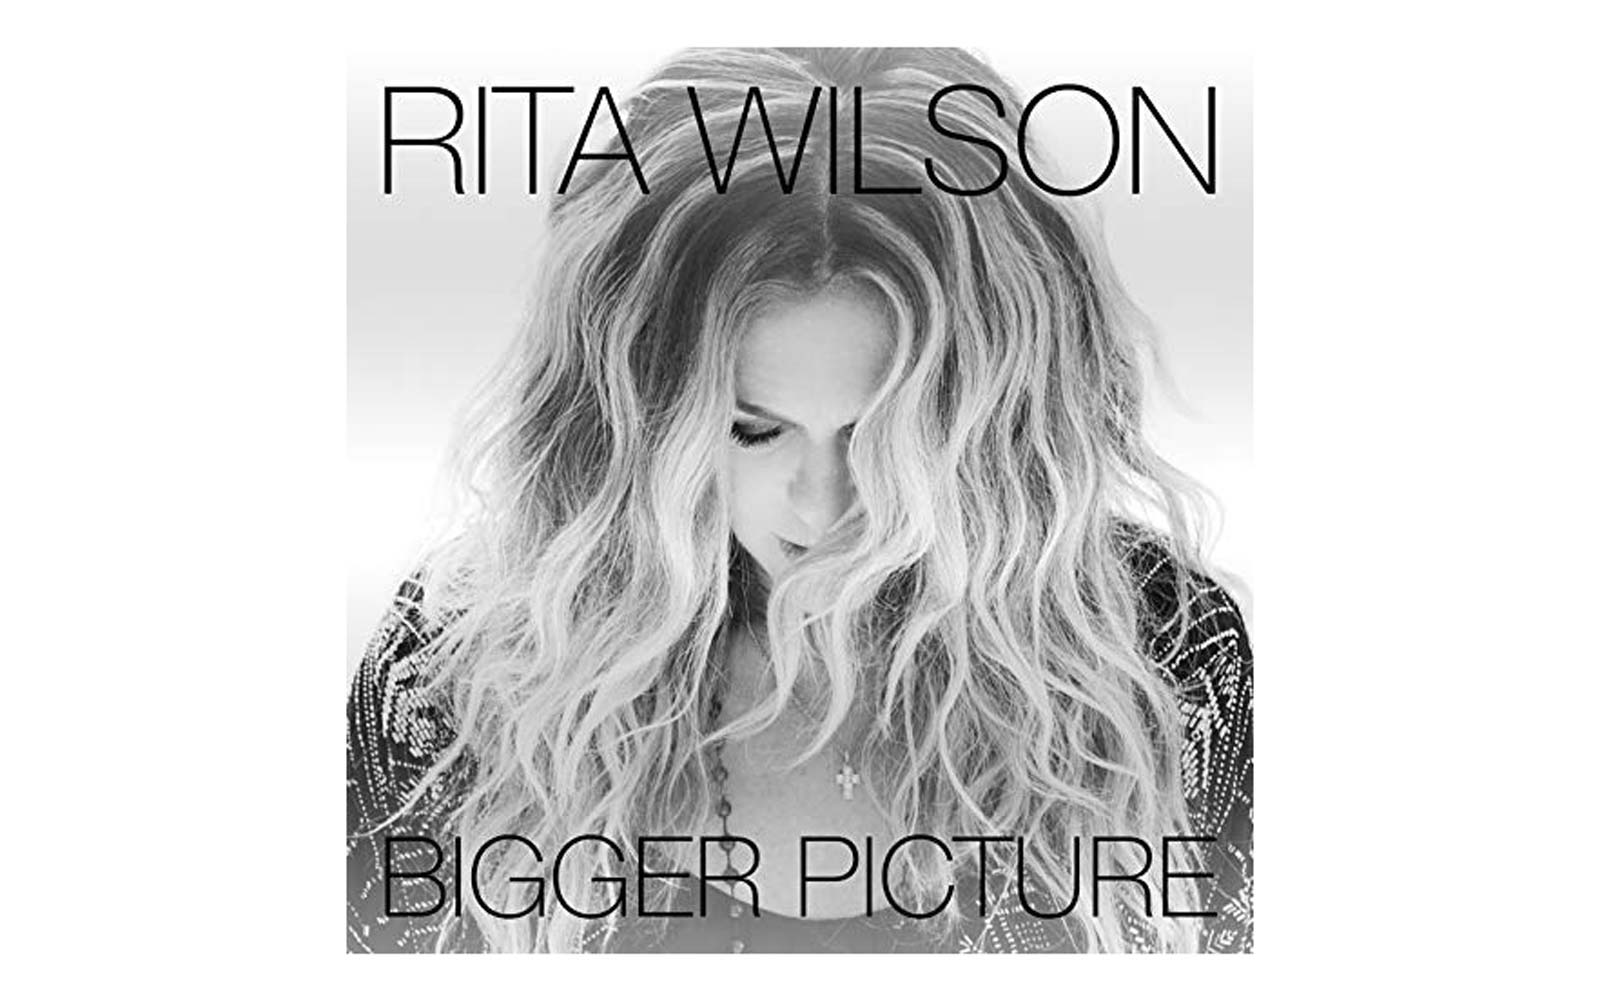 'Bigger Picture' by Rita Wilson